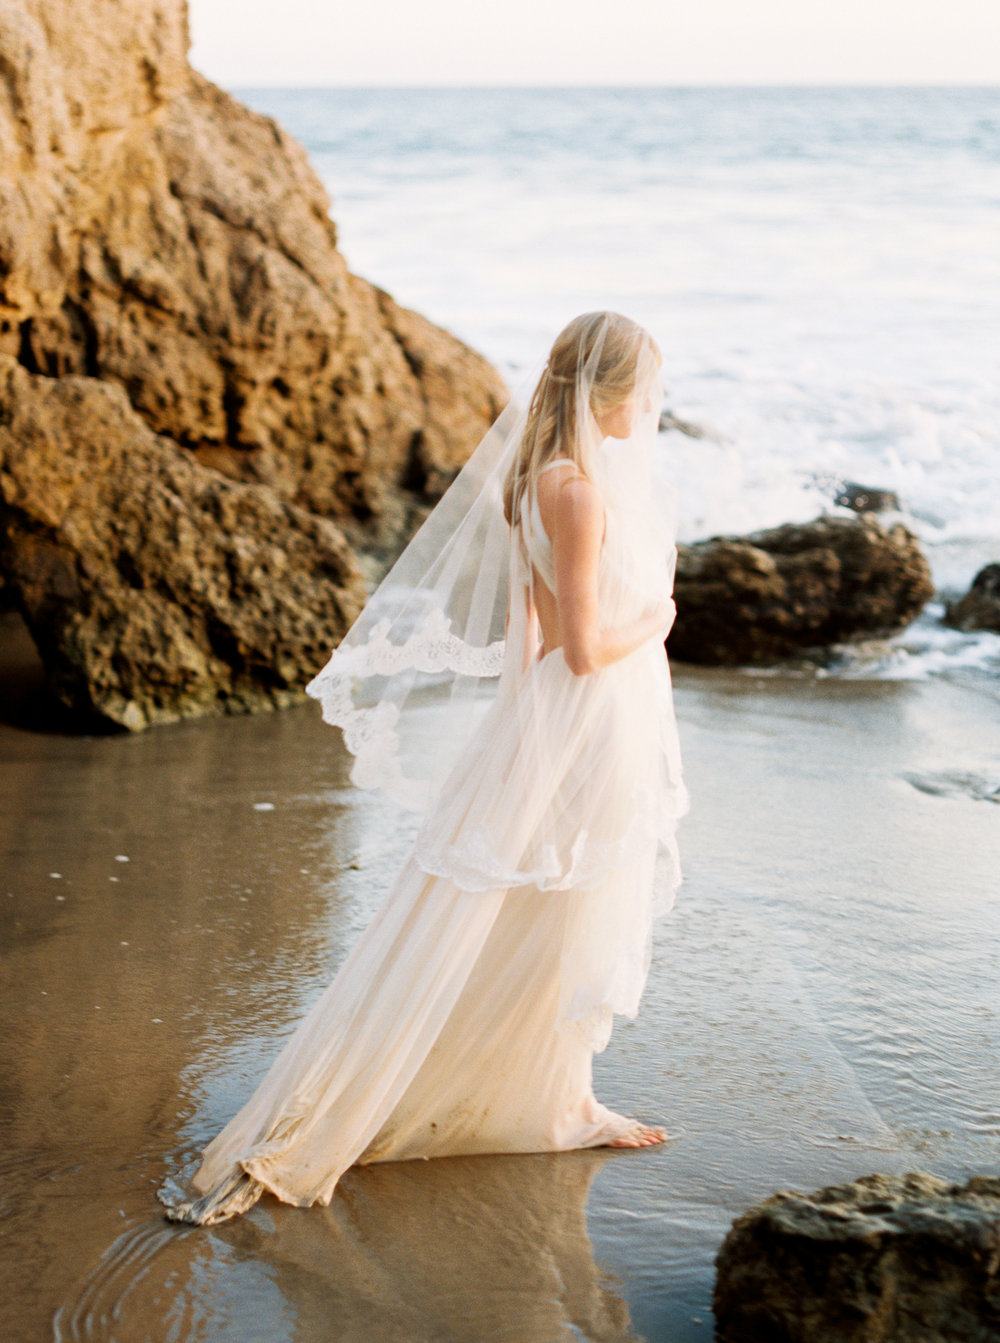 malibu_wedding_bride-88.jpg